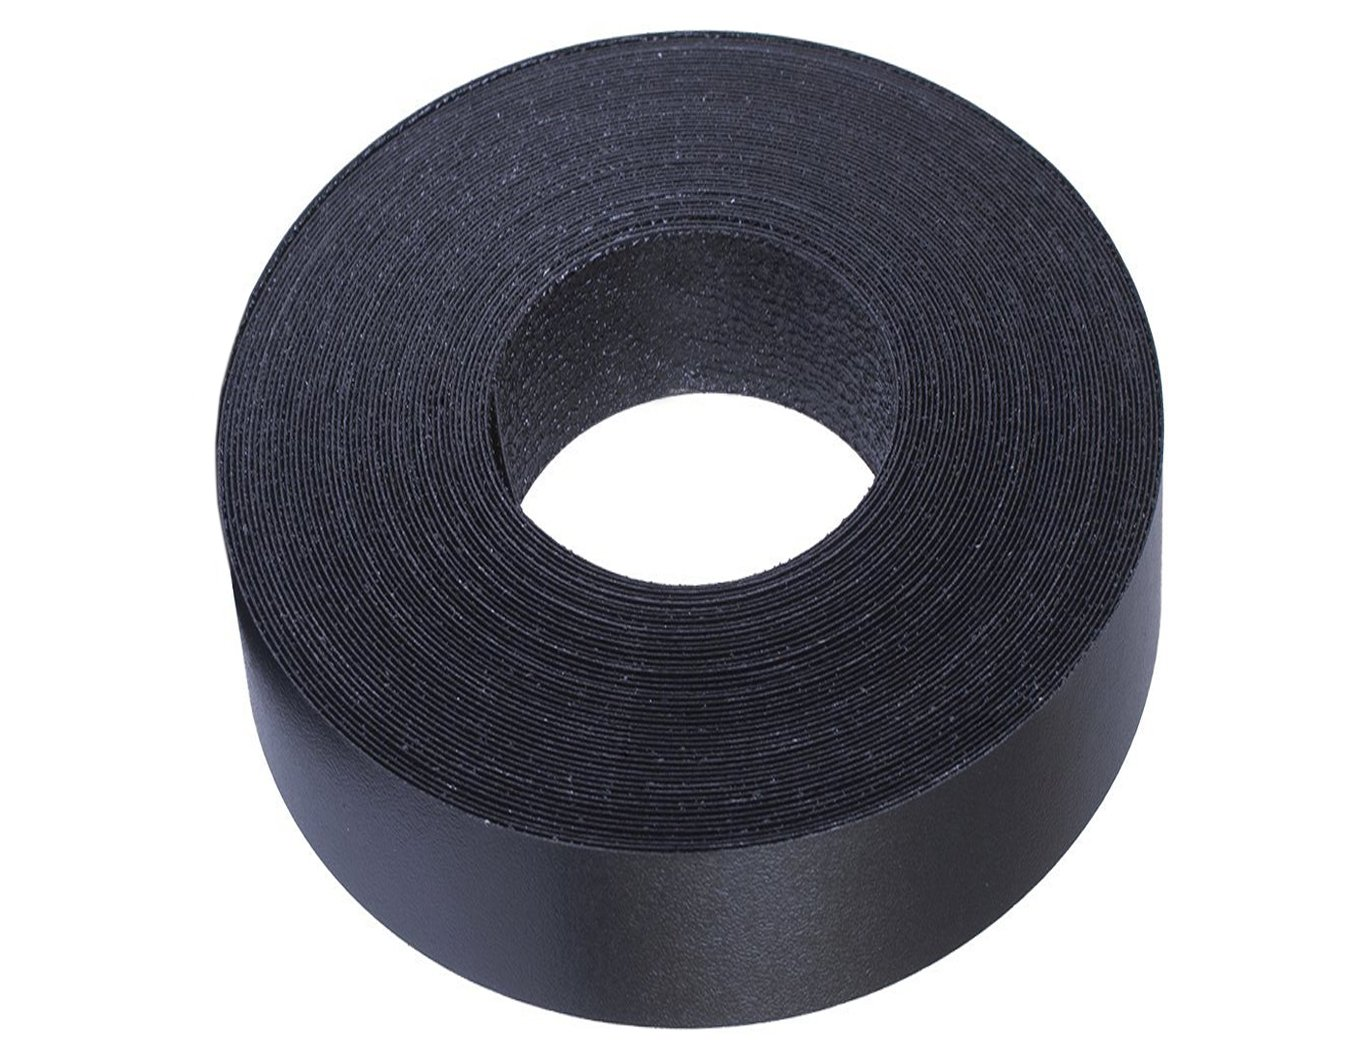 Black Melamine Edge Banding Preglued 2'' X 25' Roll - Iron on - Hot Melt - High Quality. Made in USA. by Edge Supply